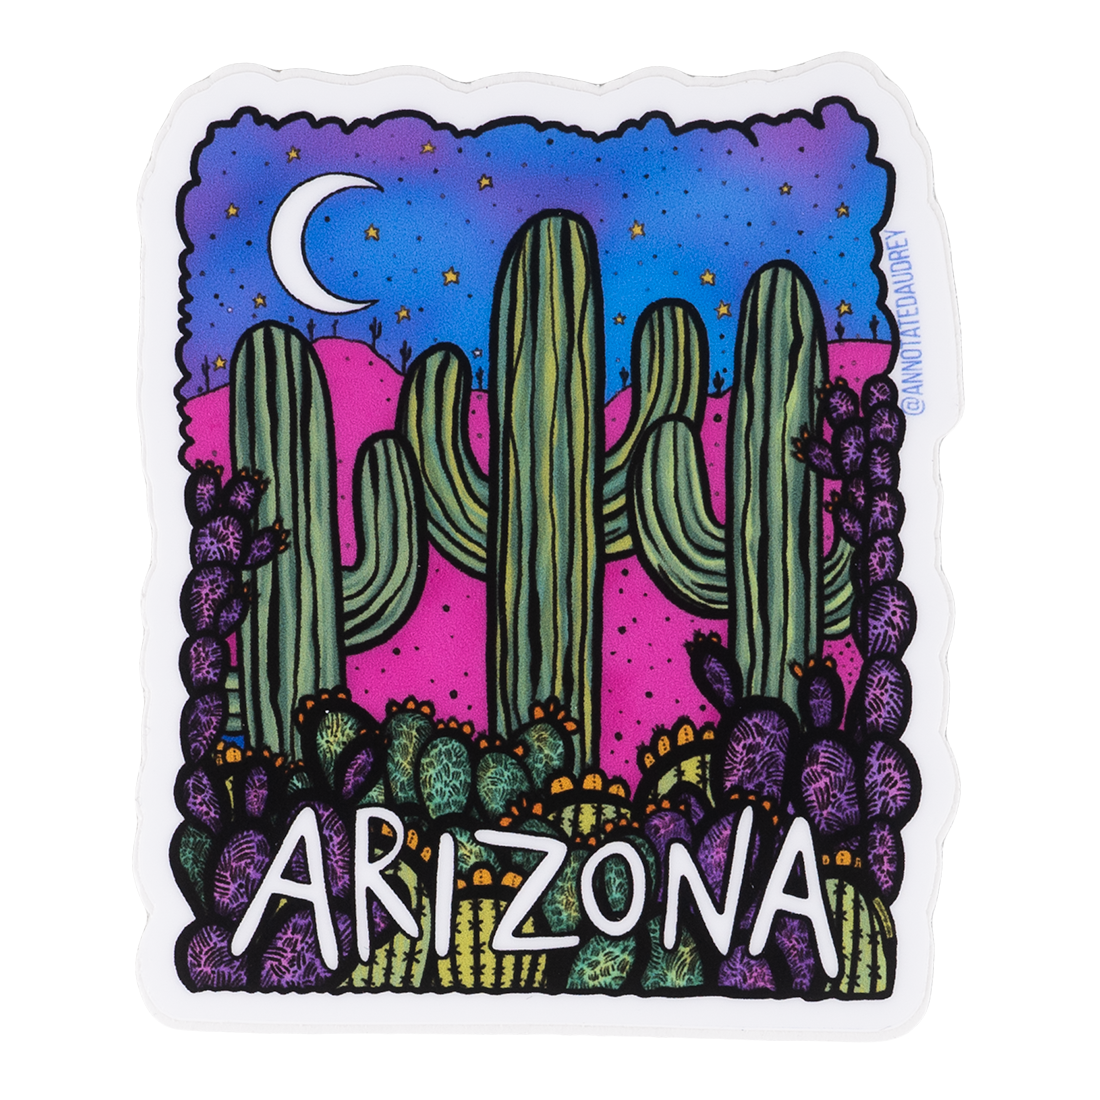 Square Arizona Sticker With Moon in Night Sky Desert Scene